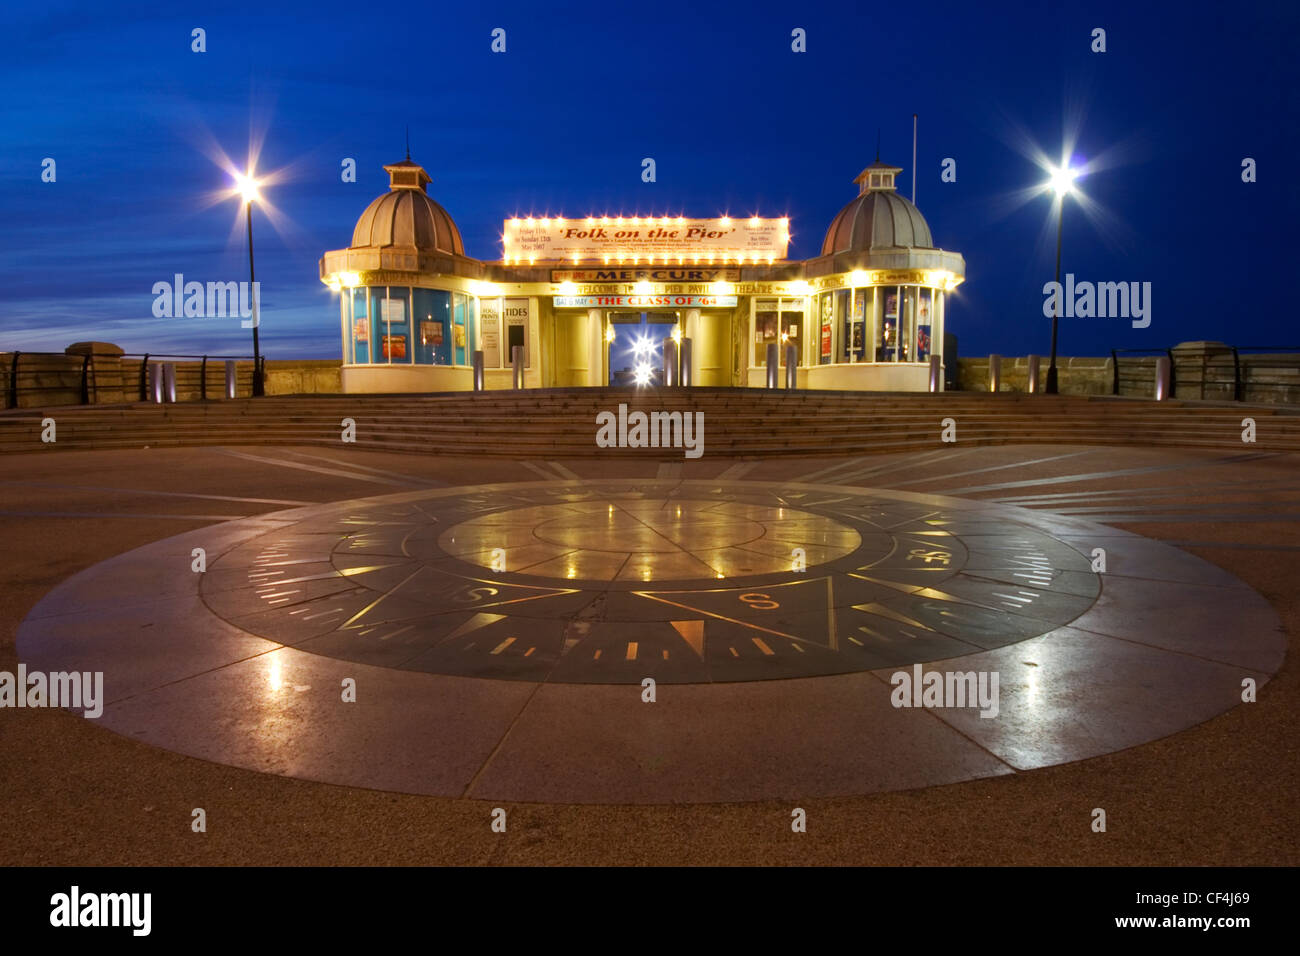 Entrance To Pier Stock Photos & Entrance To Pier Stock Images - Alamy